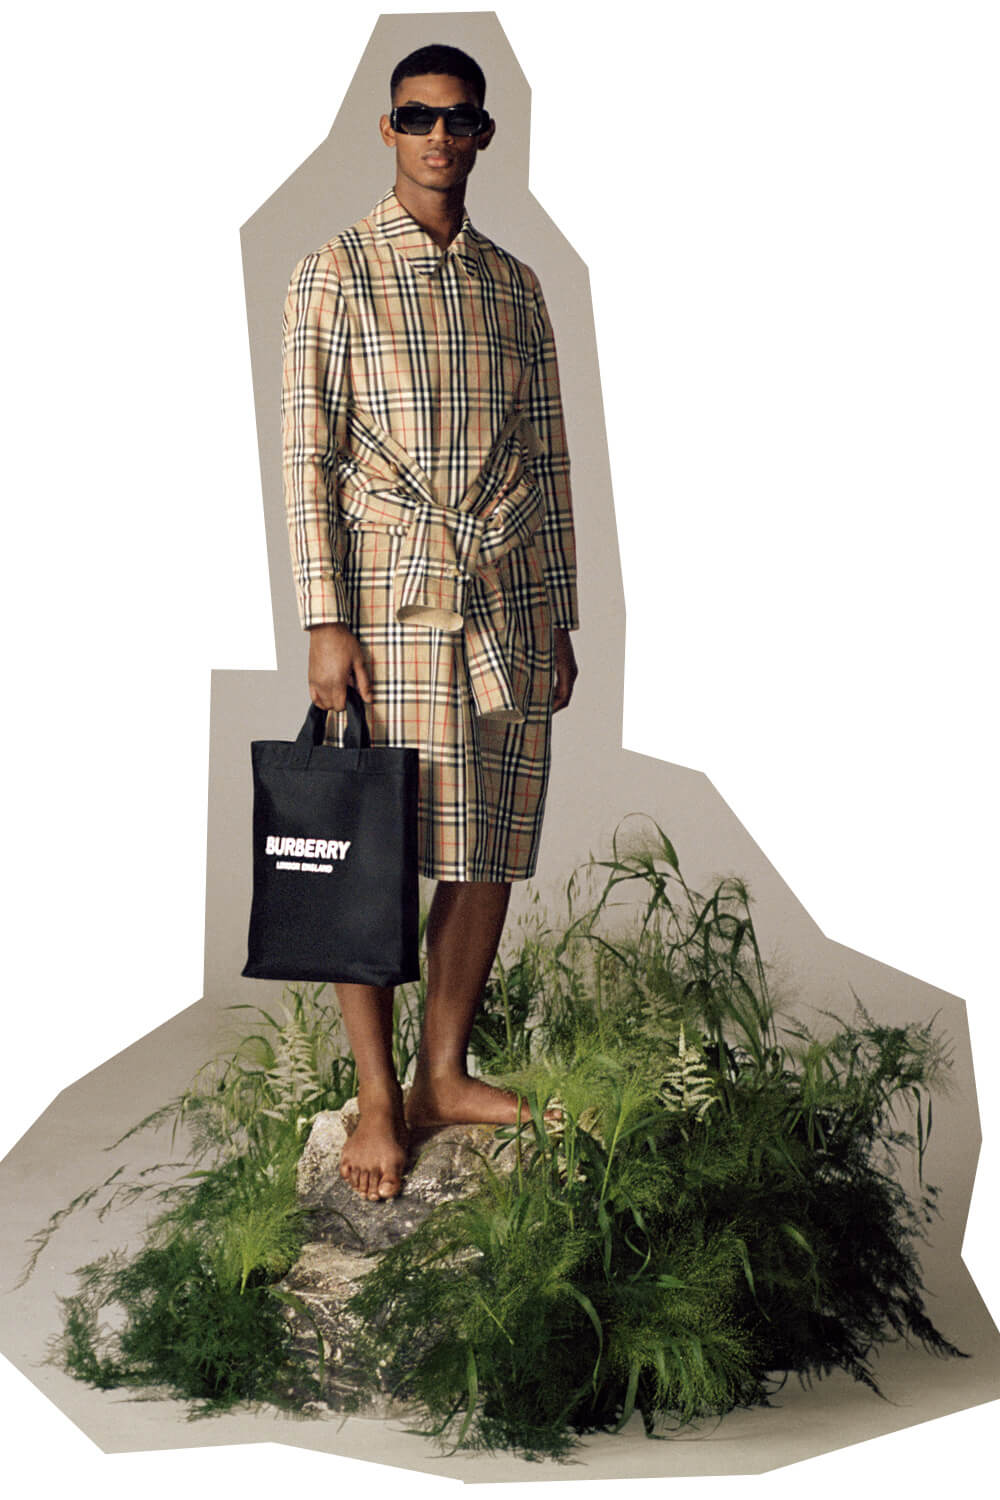 Reburberry Edit Sustainable Fashion Collection